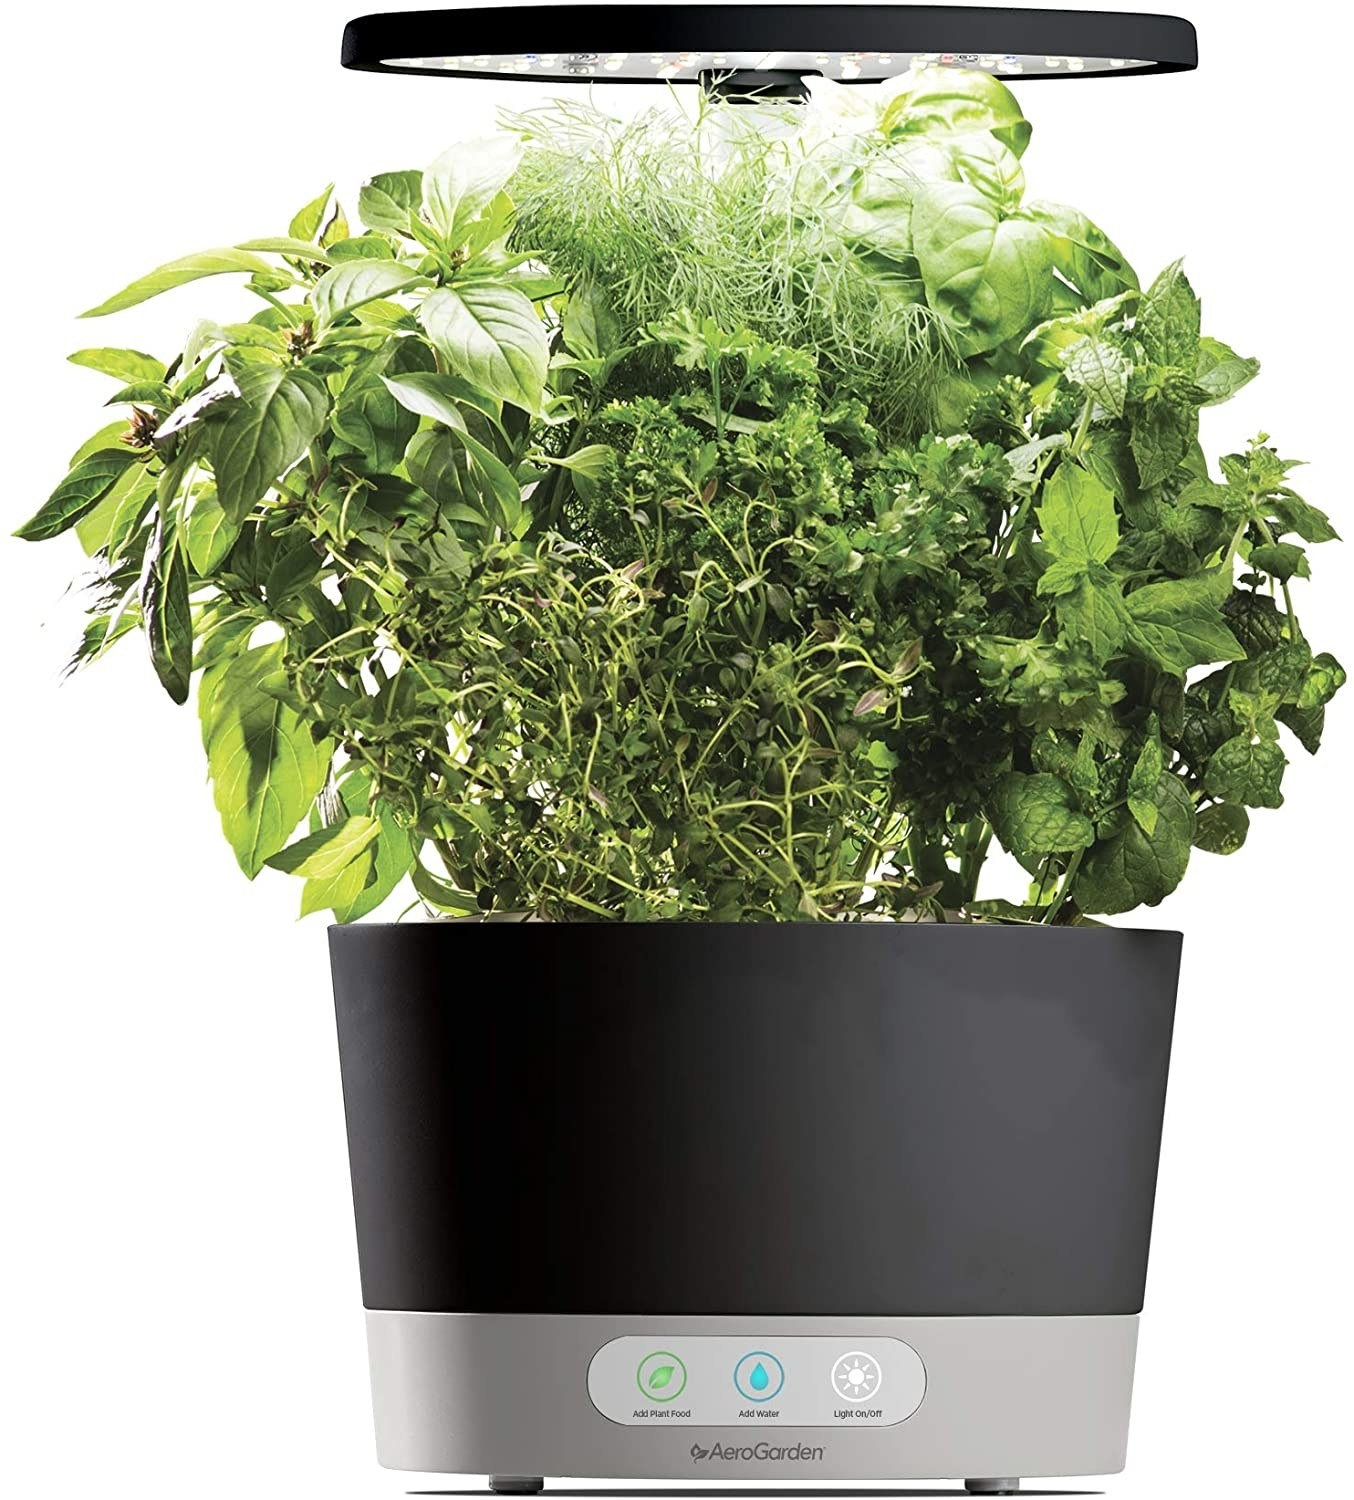 The round black AeroGarden